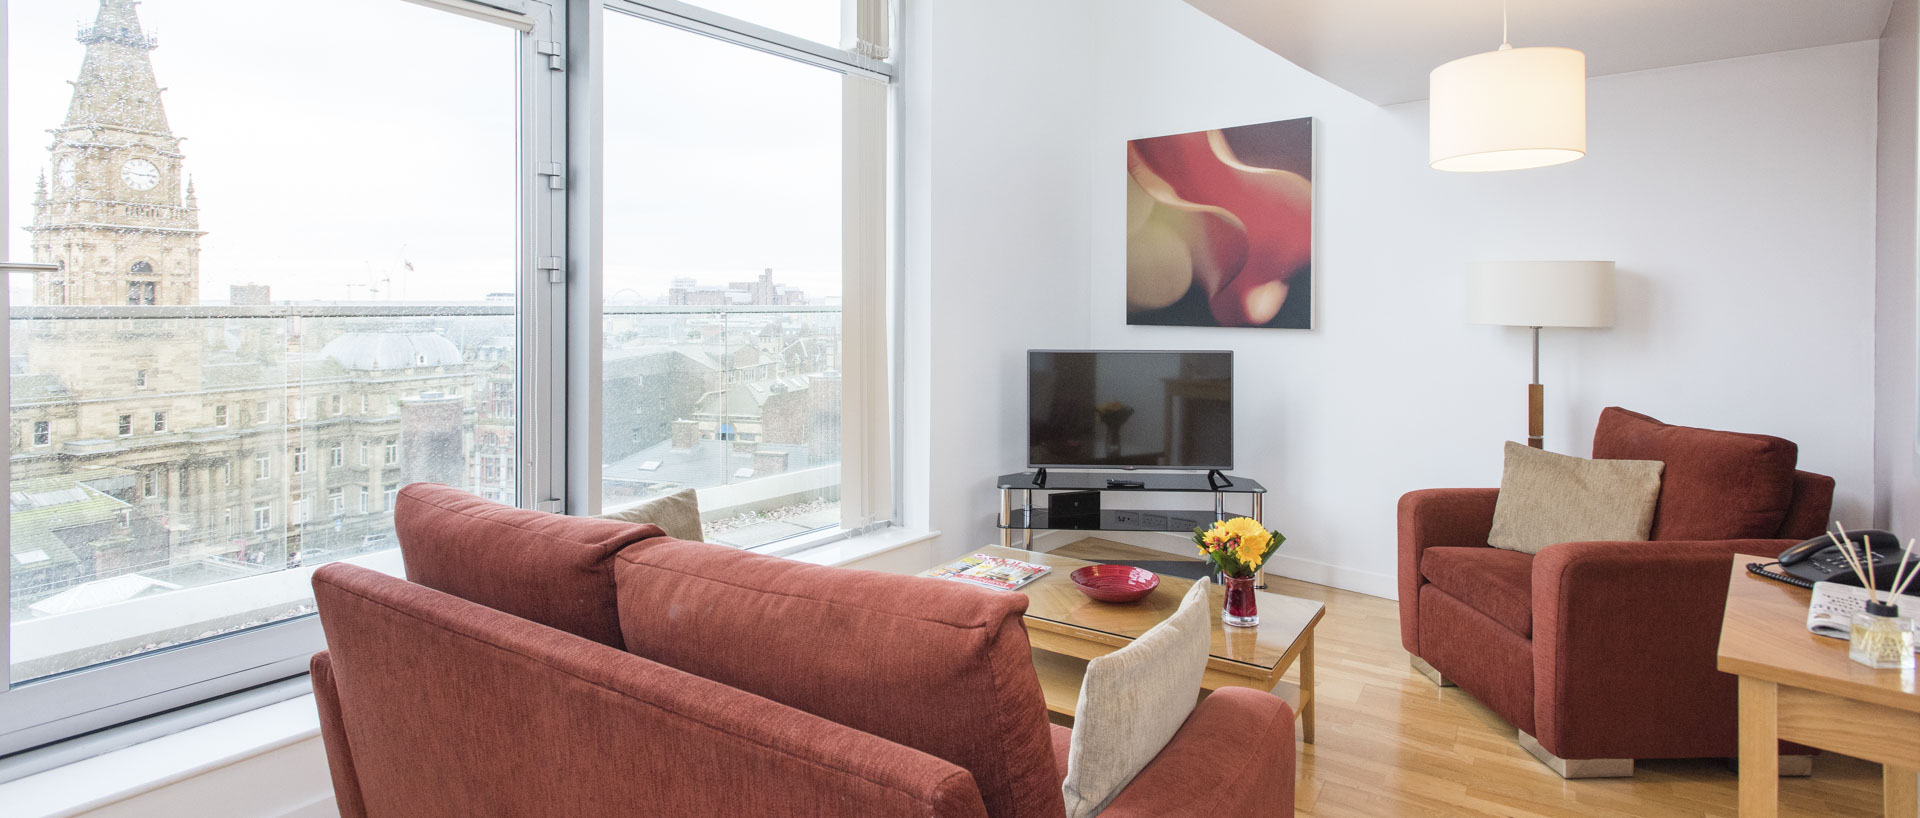 PREMIER SUITES Liverpool penthouse apartment